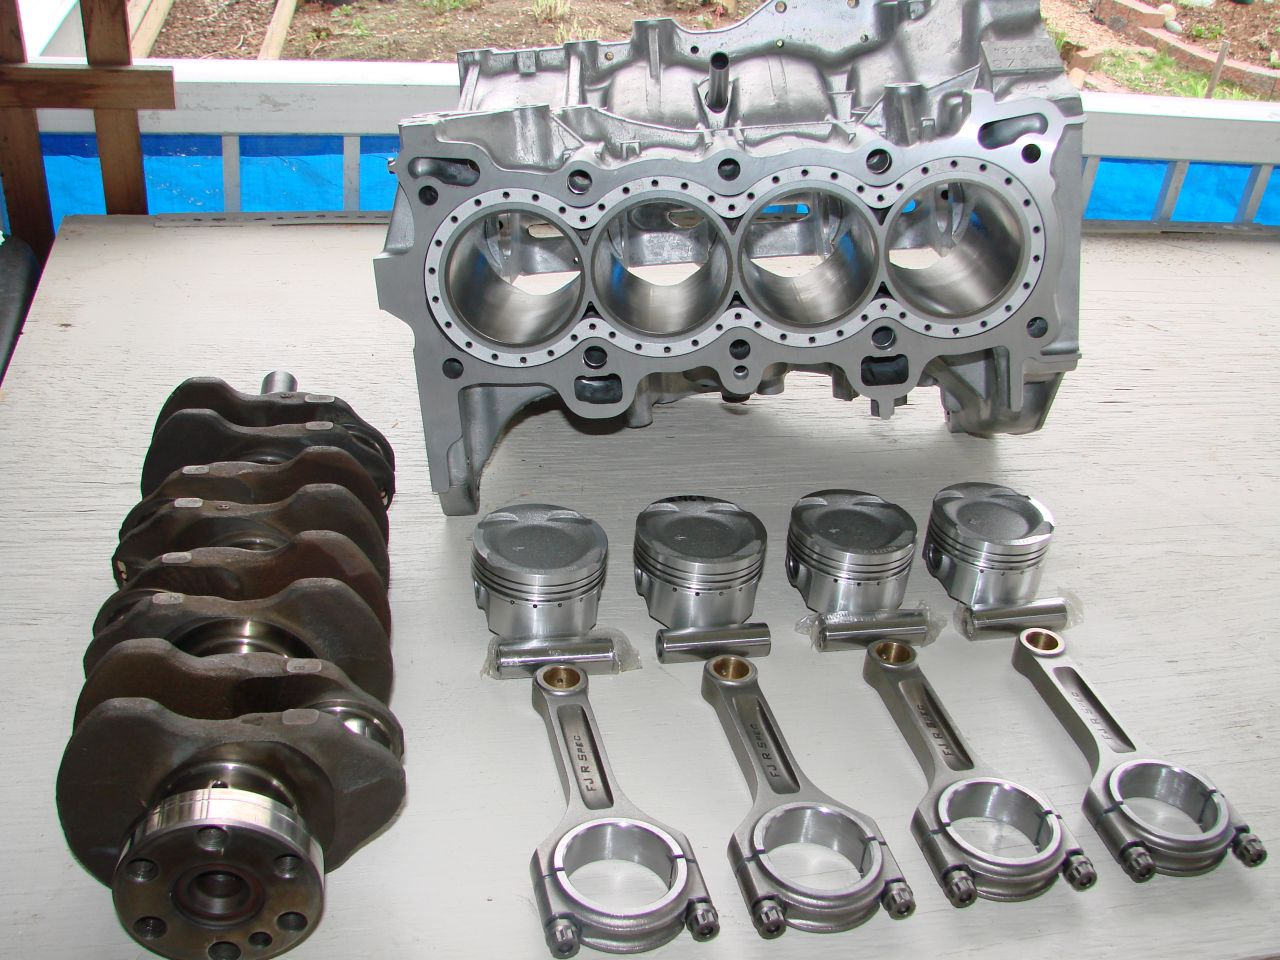 Advanced Performance Tuning: SOHC D16 350HP Factory Engine